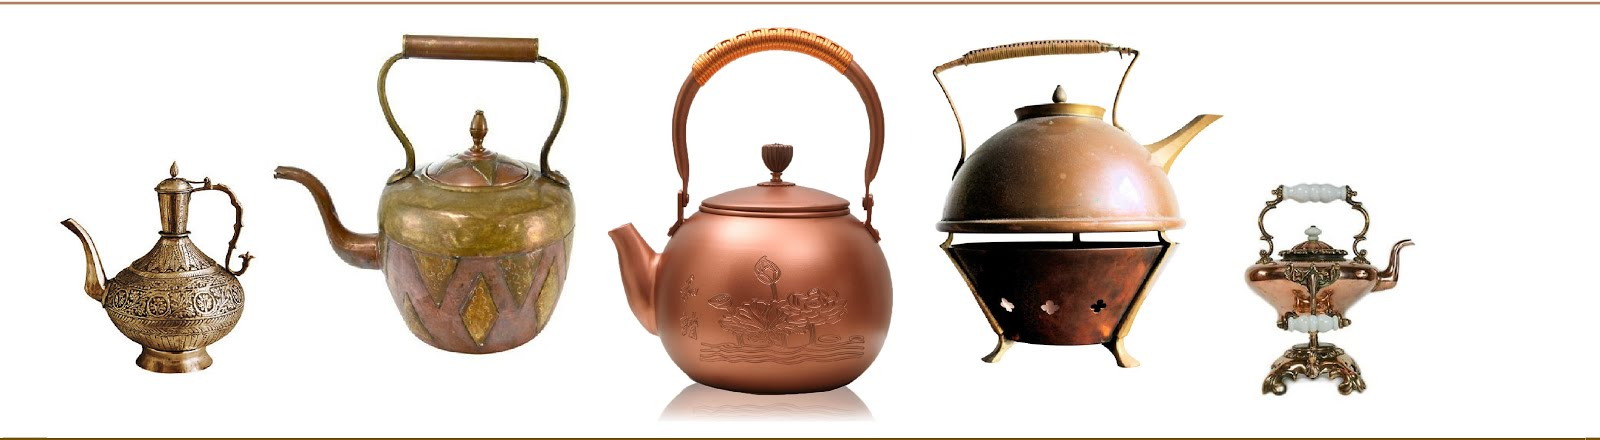 COPPER AND BRASS TEAPOTS